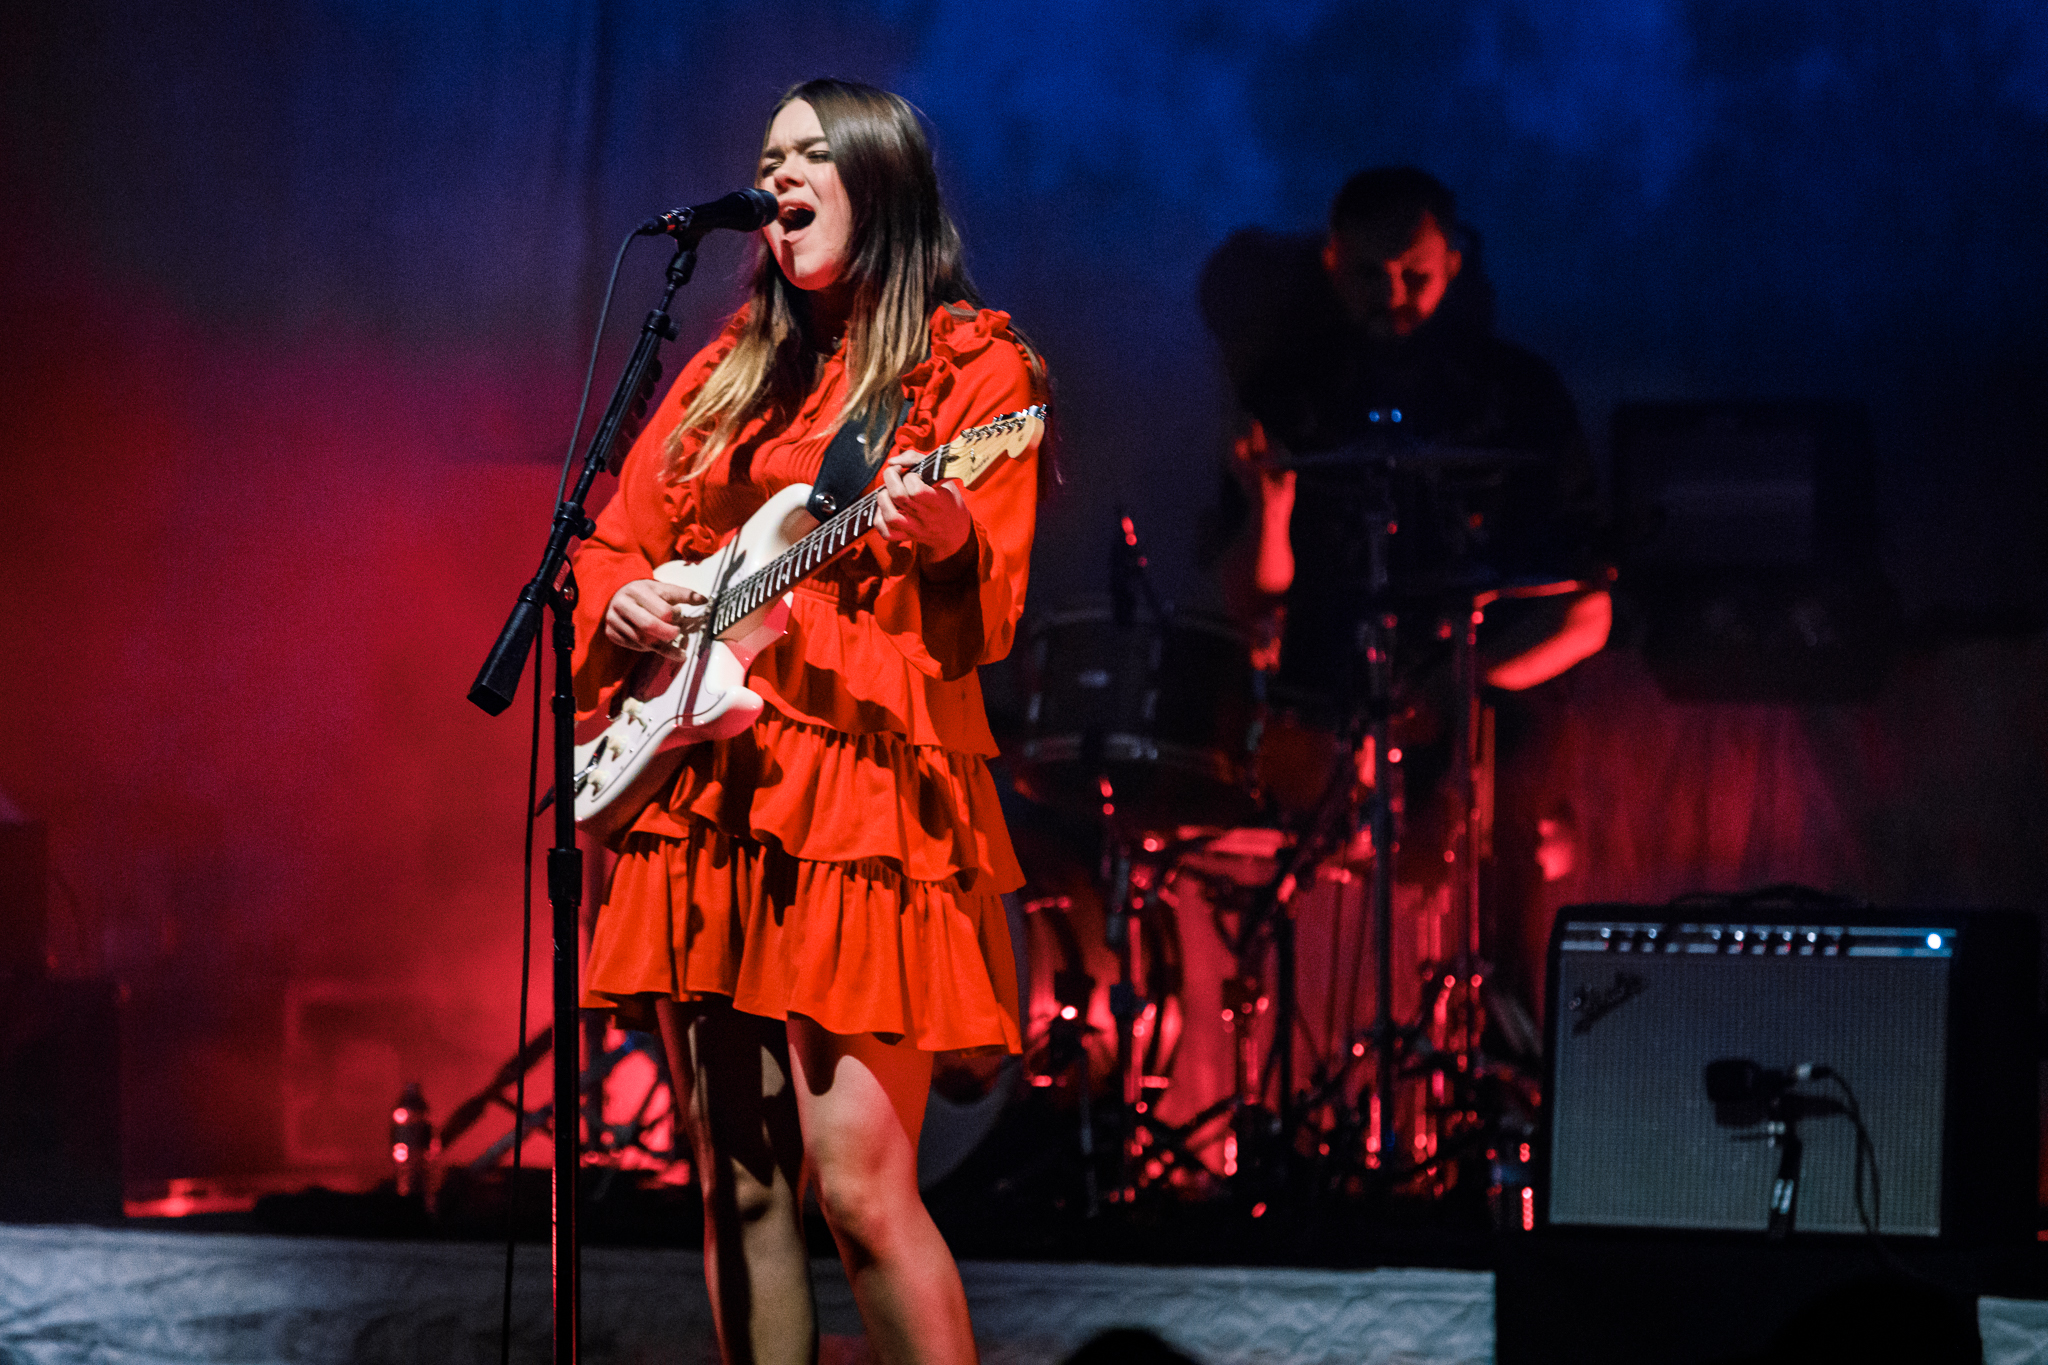 First Aid Kit performing at the Lincoln Theatre in Washington, DC on February 9th, 2018 (photo by Matt Condon /  @arcane93 )